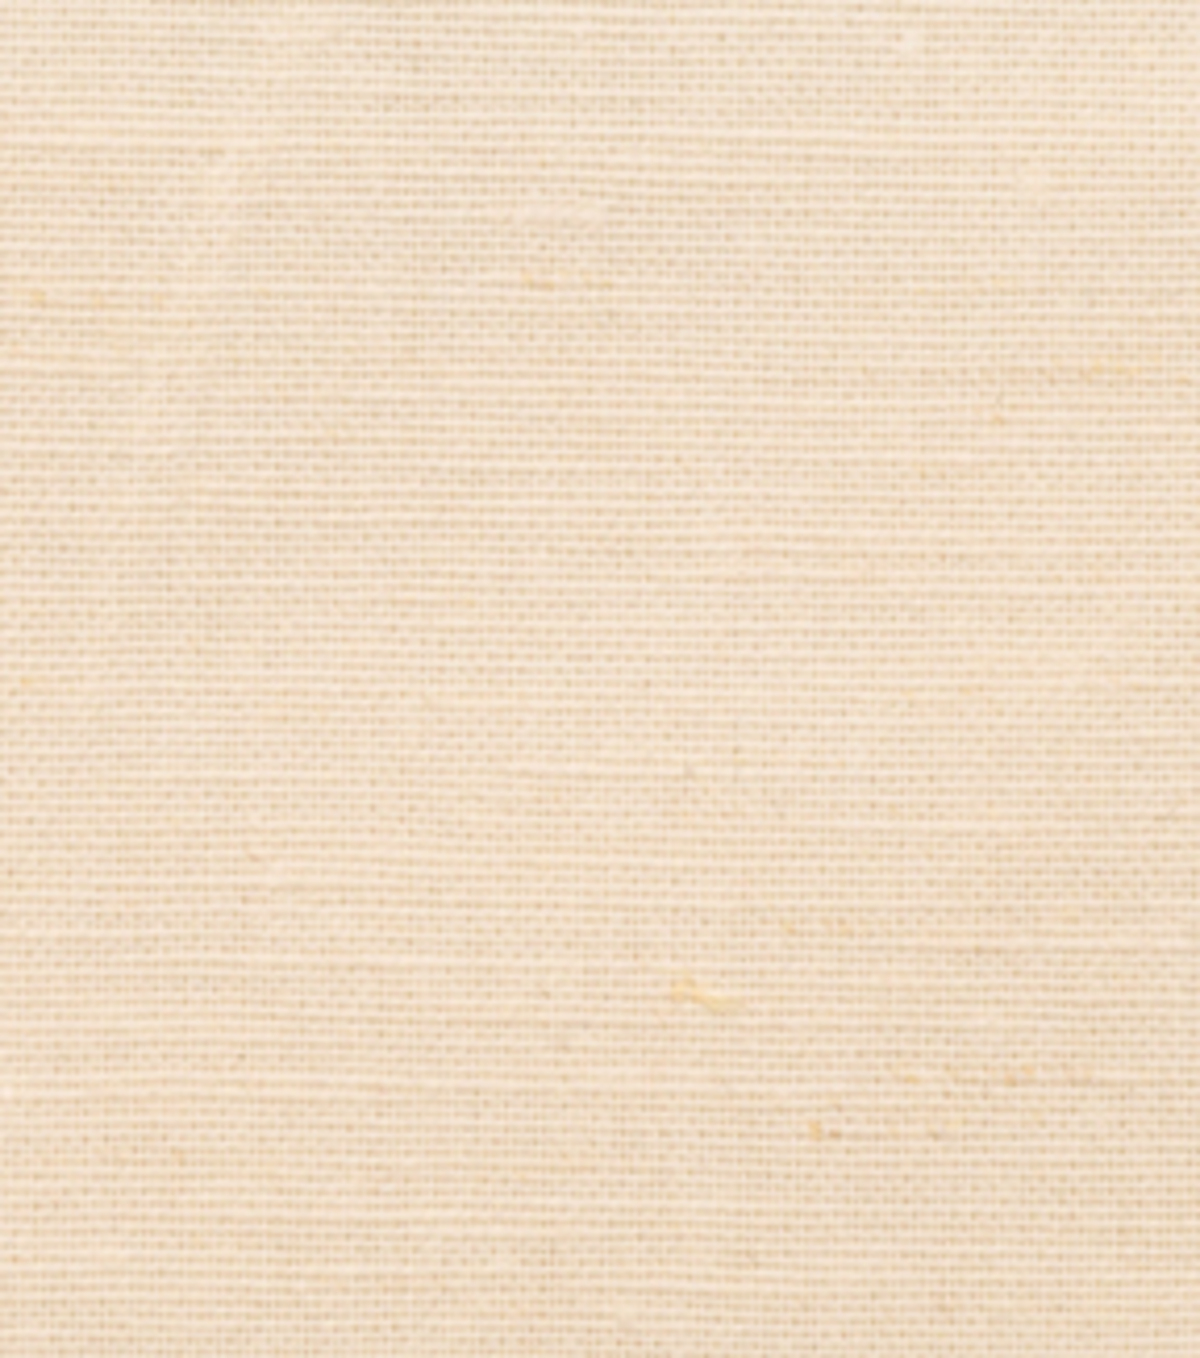 Home Decor 8\u0022x8\u0022 Fabric Swatch-Signature Series Sonoma Linen-Cotton Cloud